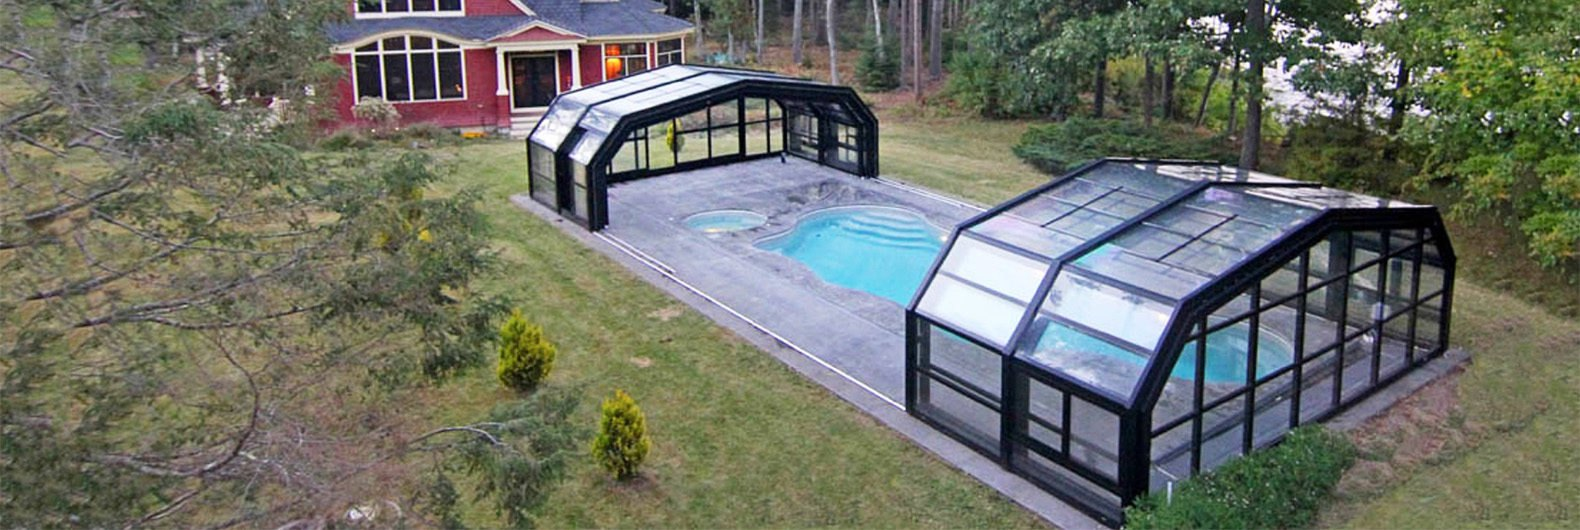 Merveilleux This Amazing Retractable Roof Shelters A Pool In Maine For Year Round Fun